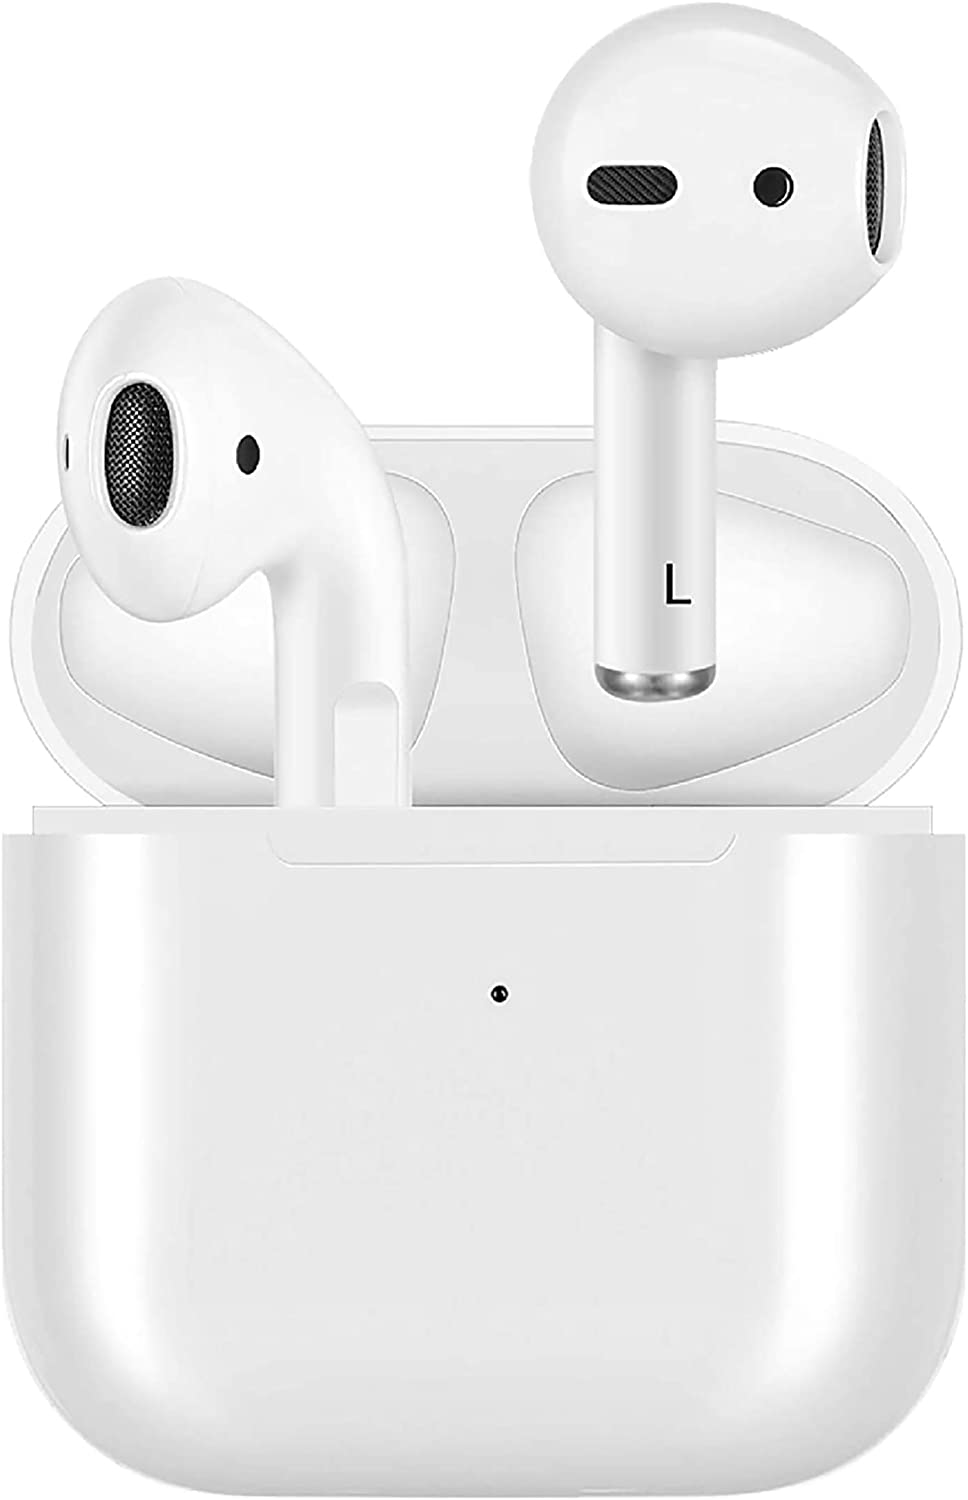 【Mini PRO 4】 Wireless Earbuds, Bluetooth 5.0 Headphones TWS Stereo Touch Control Earphones with Wireless Charging Case Mini Car Built-in Mic Headset,Compatible for iPhone/Android(2020 New Earbuds)